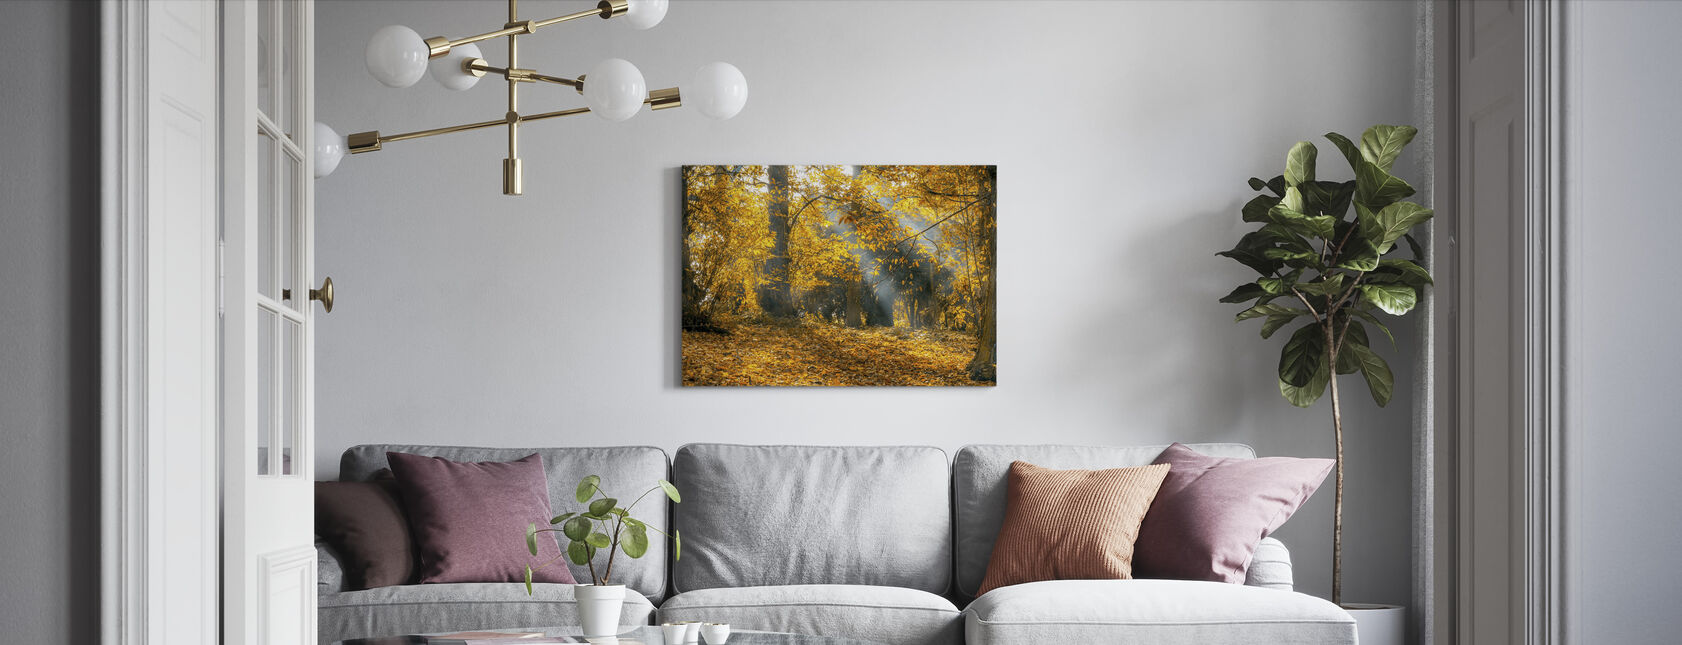 Yellow Autumn Leaves - Canvas print - Living Room